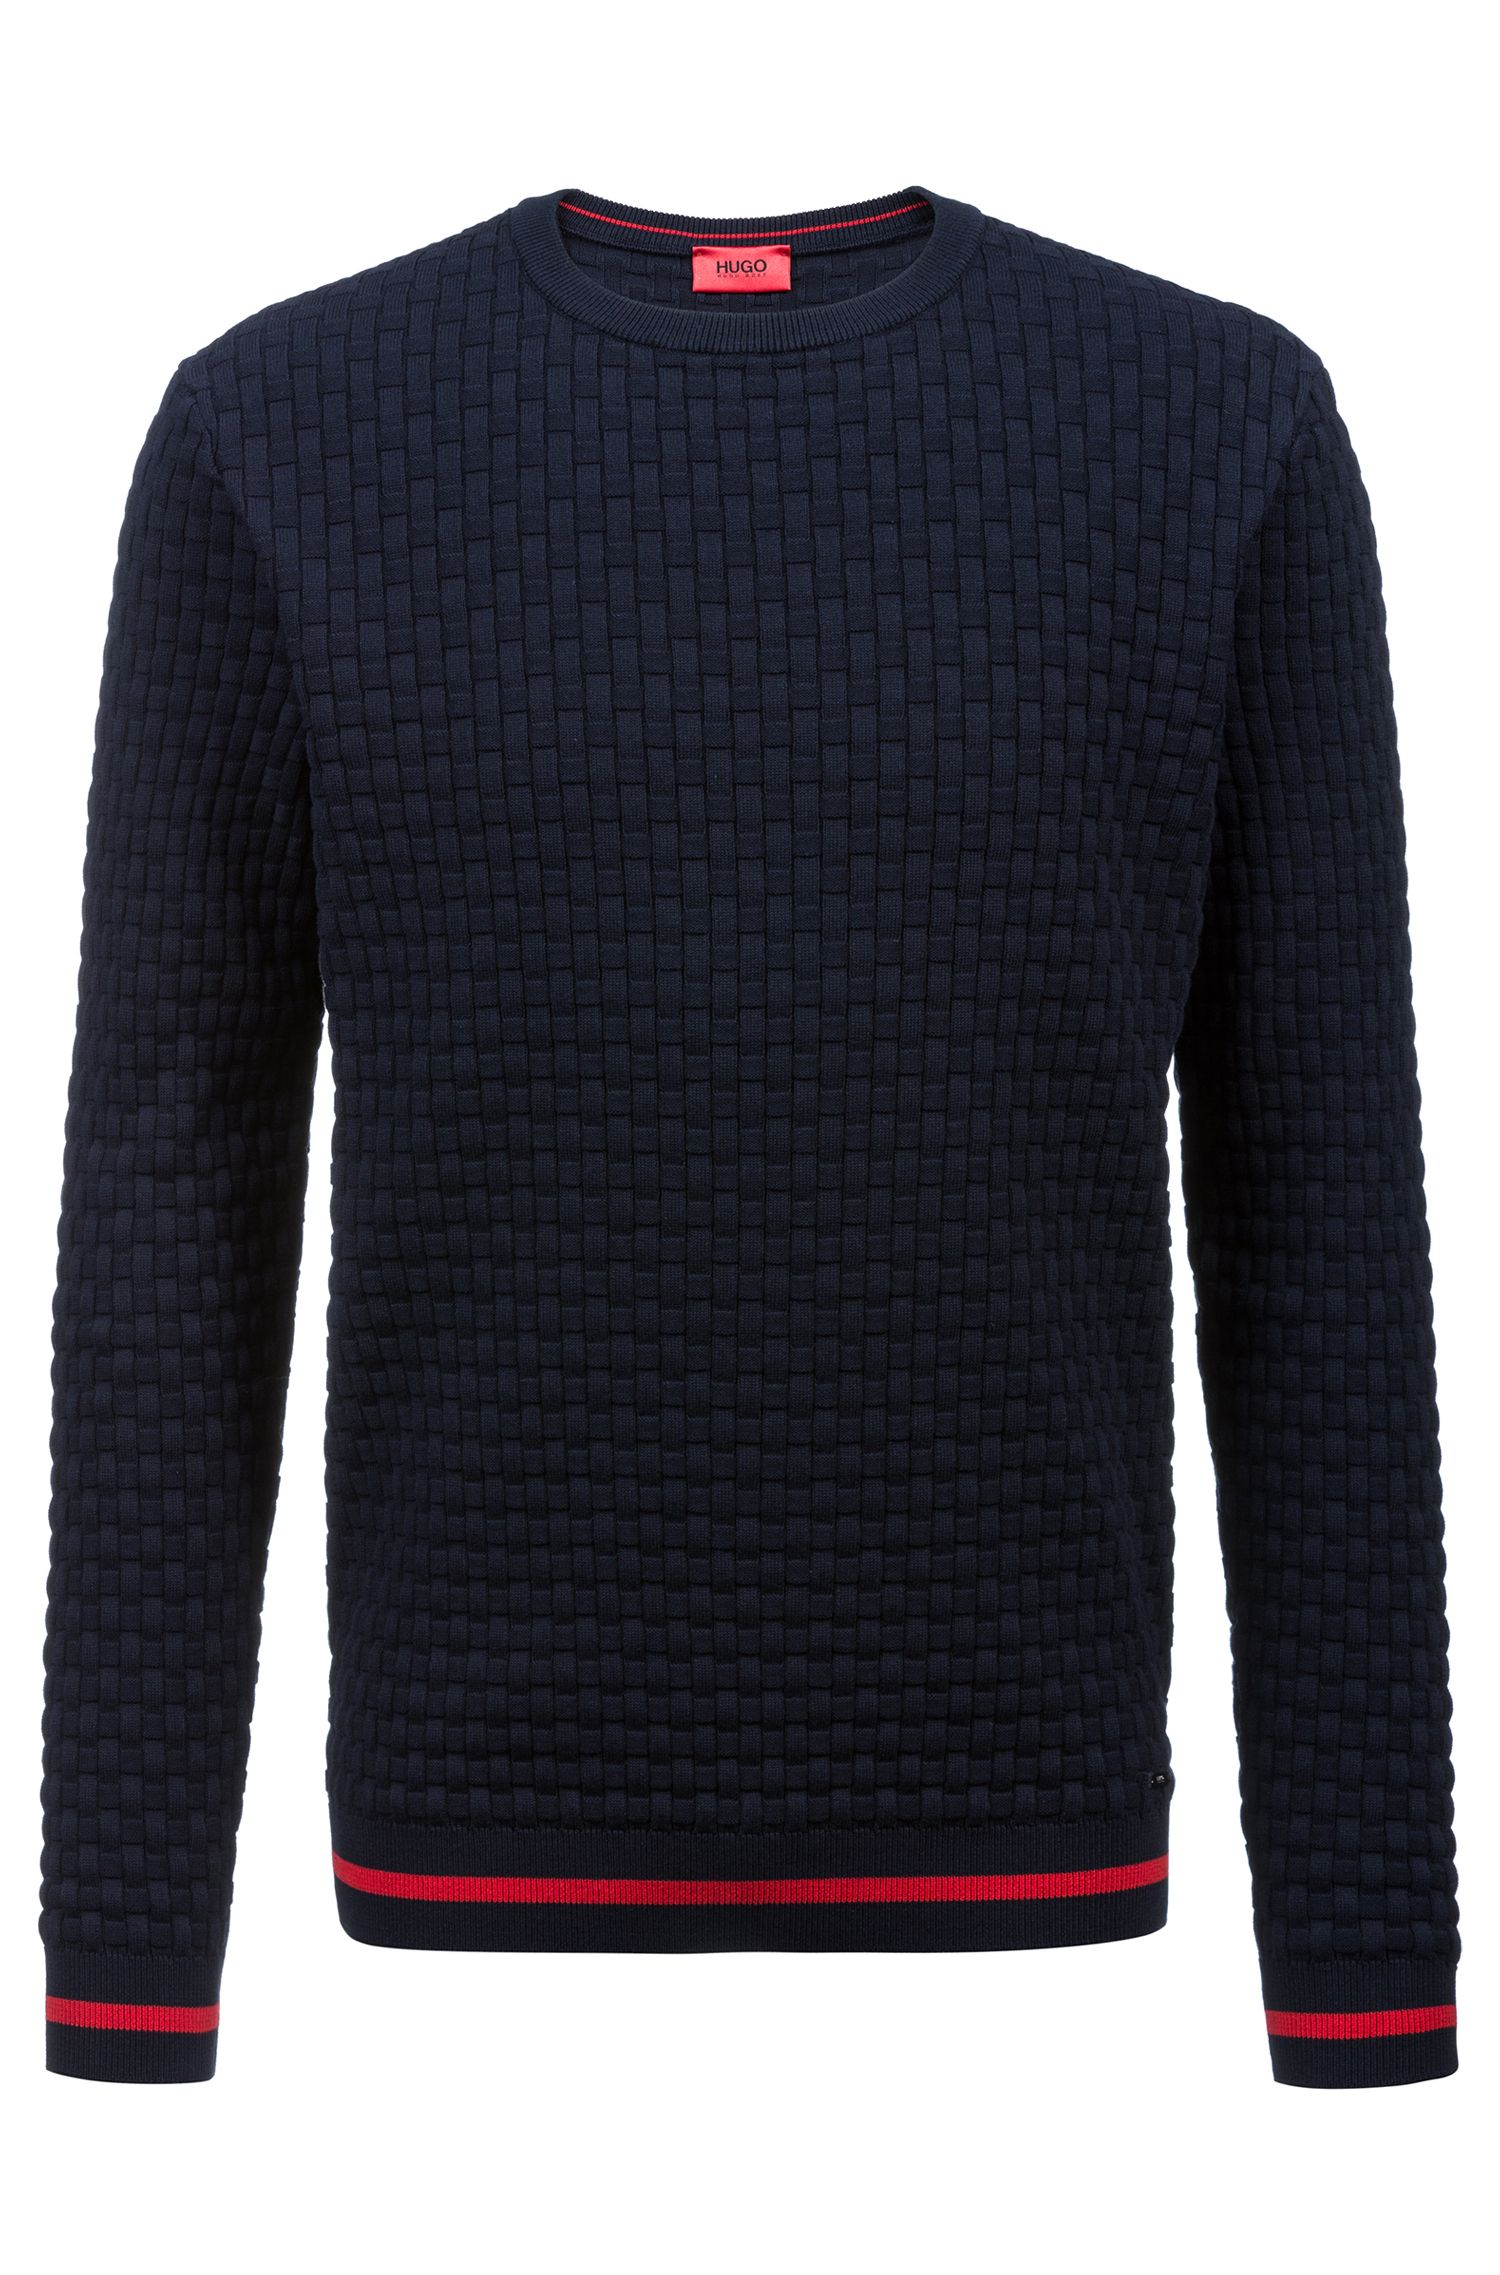 Crew-neck sweater in knitted cotton jacquard, Dark Blue